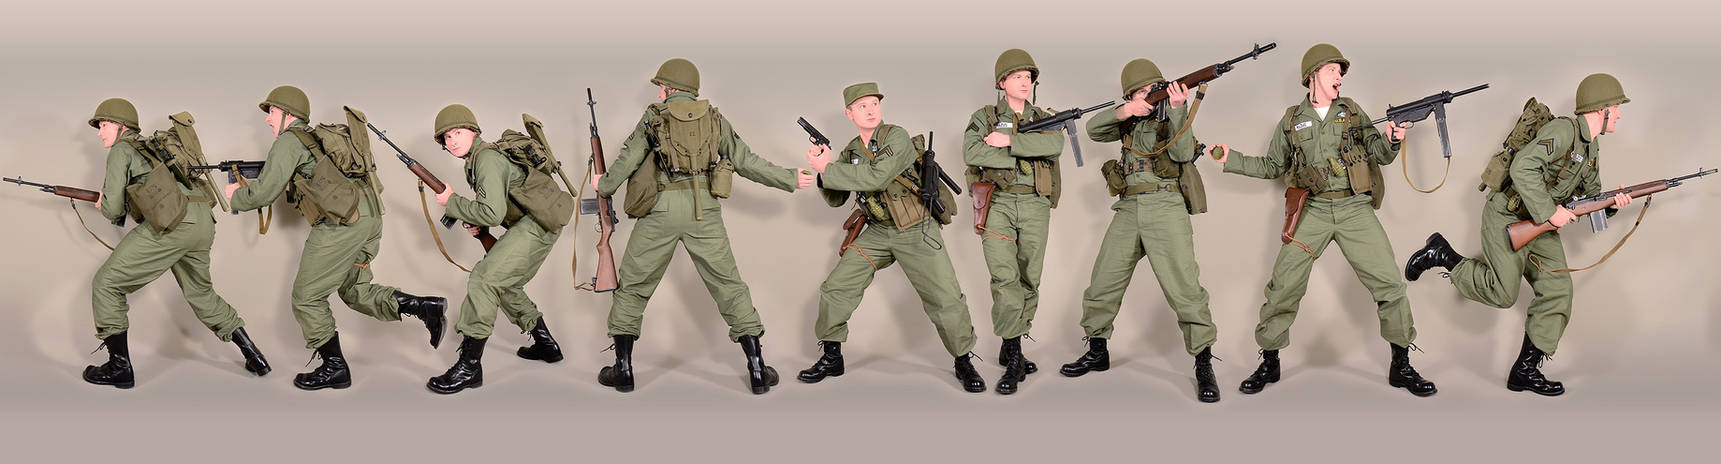 Military - uniform US soldiers utility1 50s